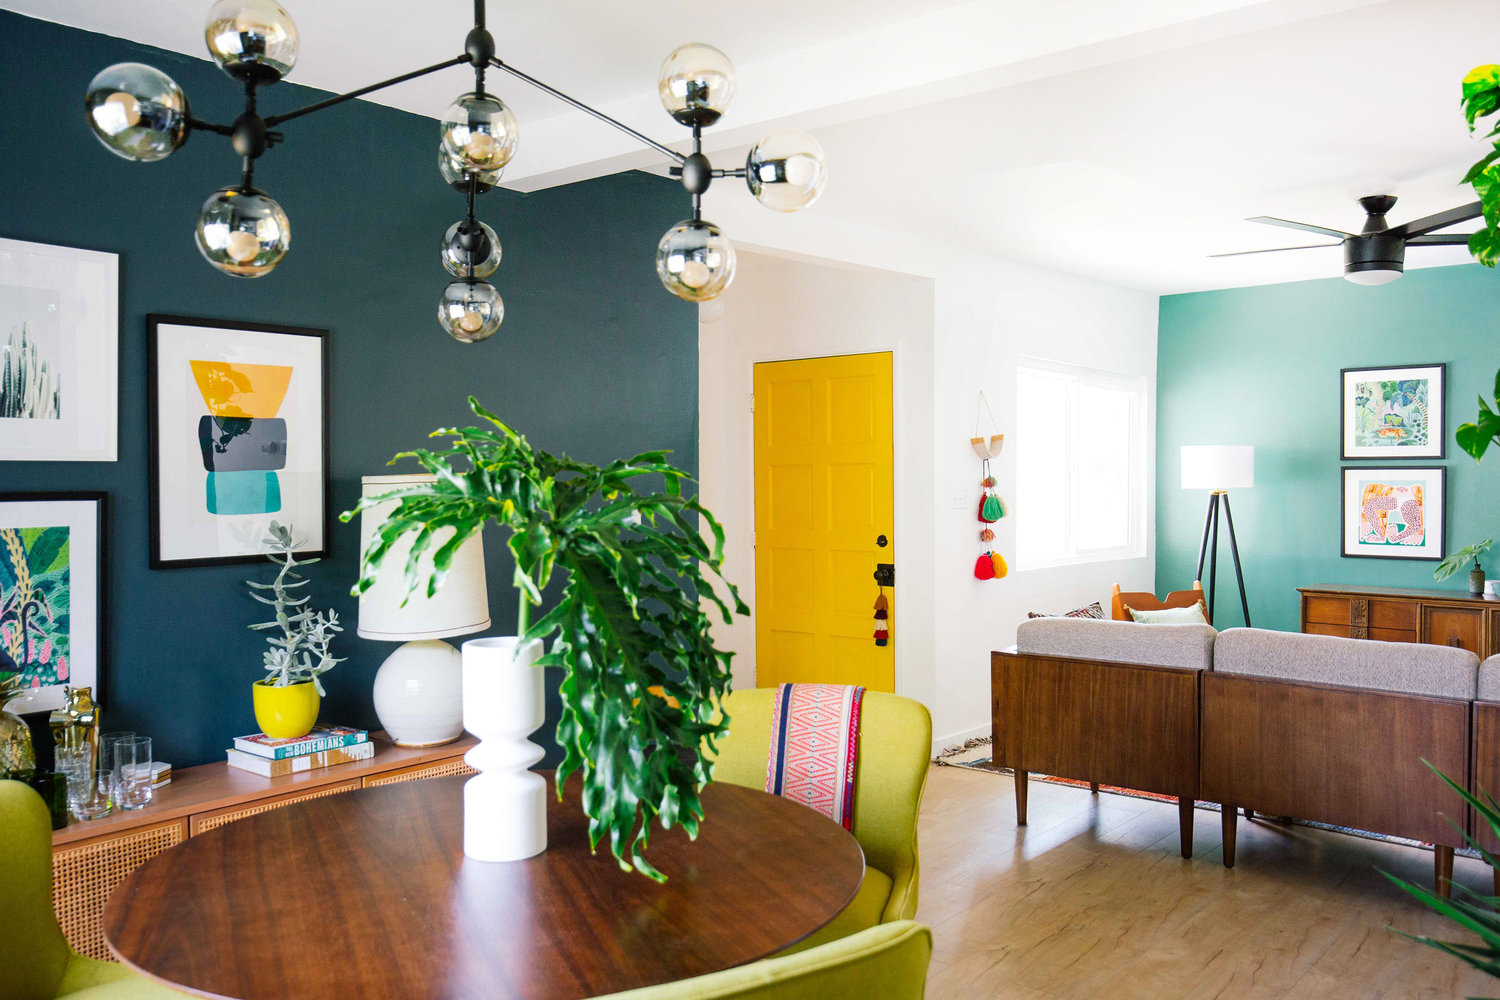 Summery - Colorful Interior Design Highlights